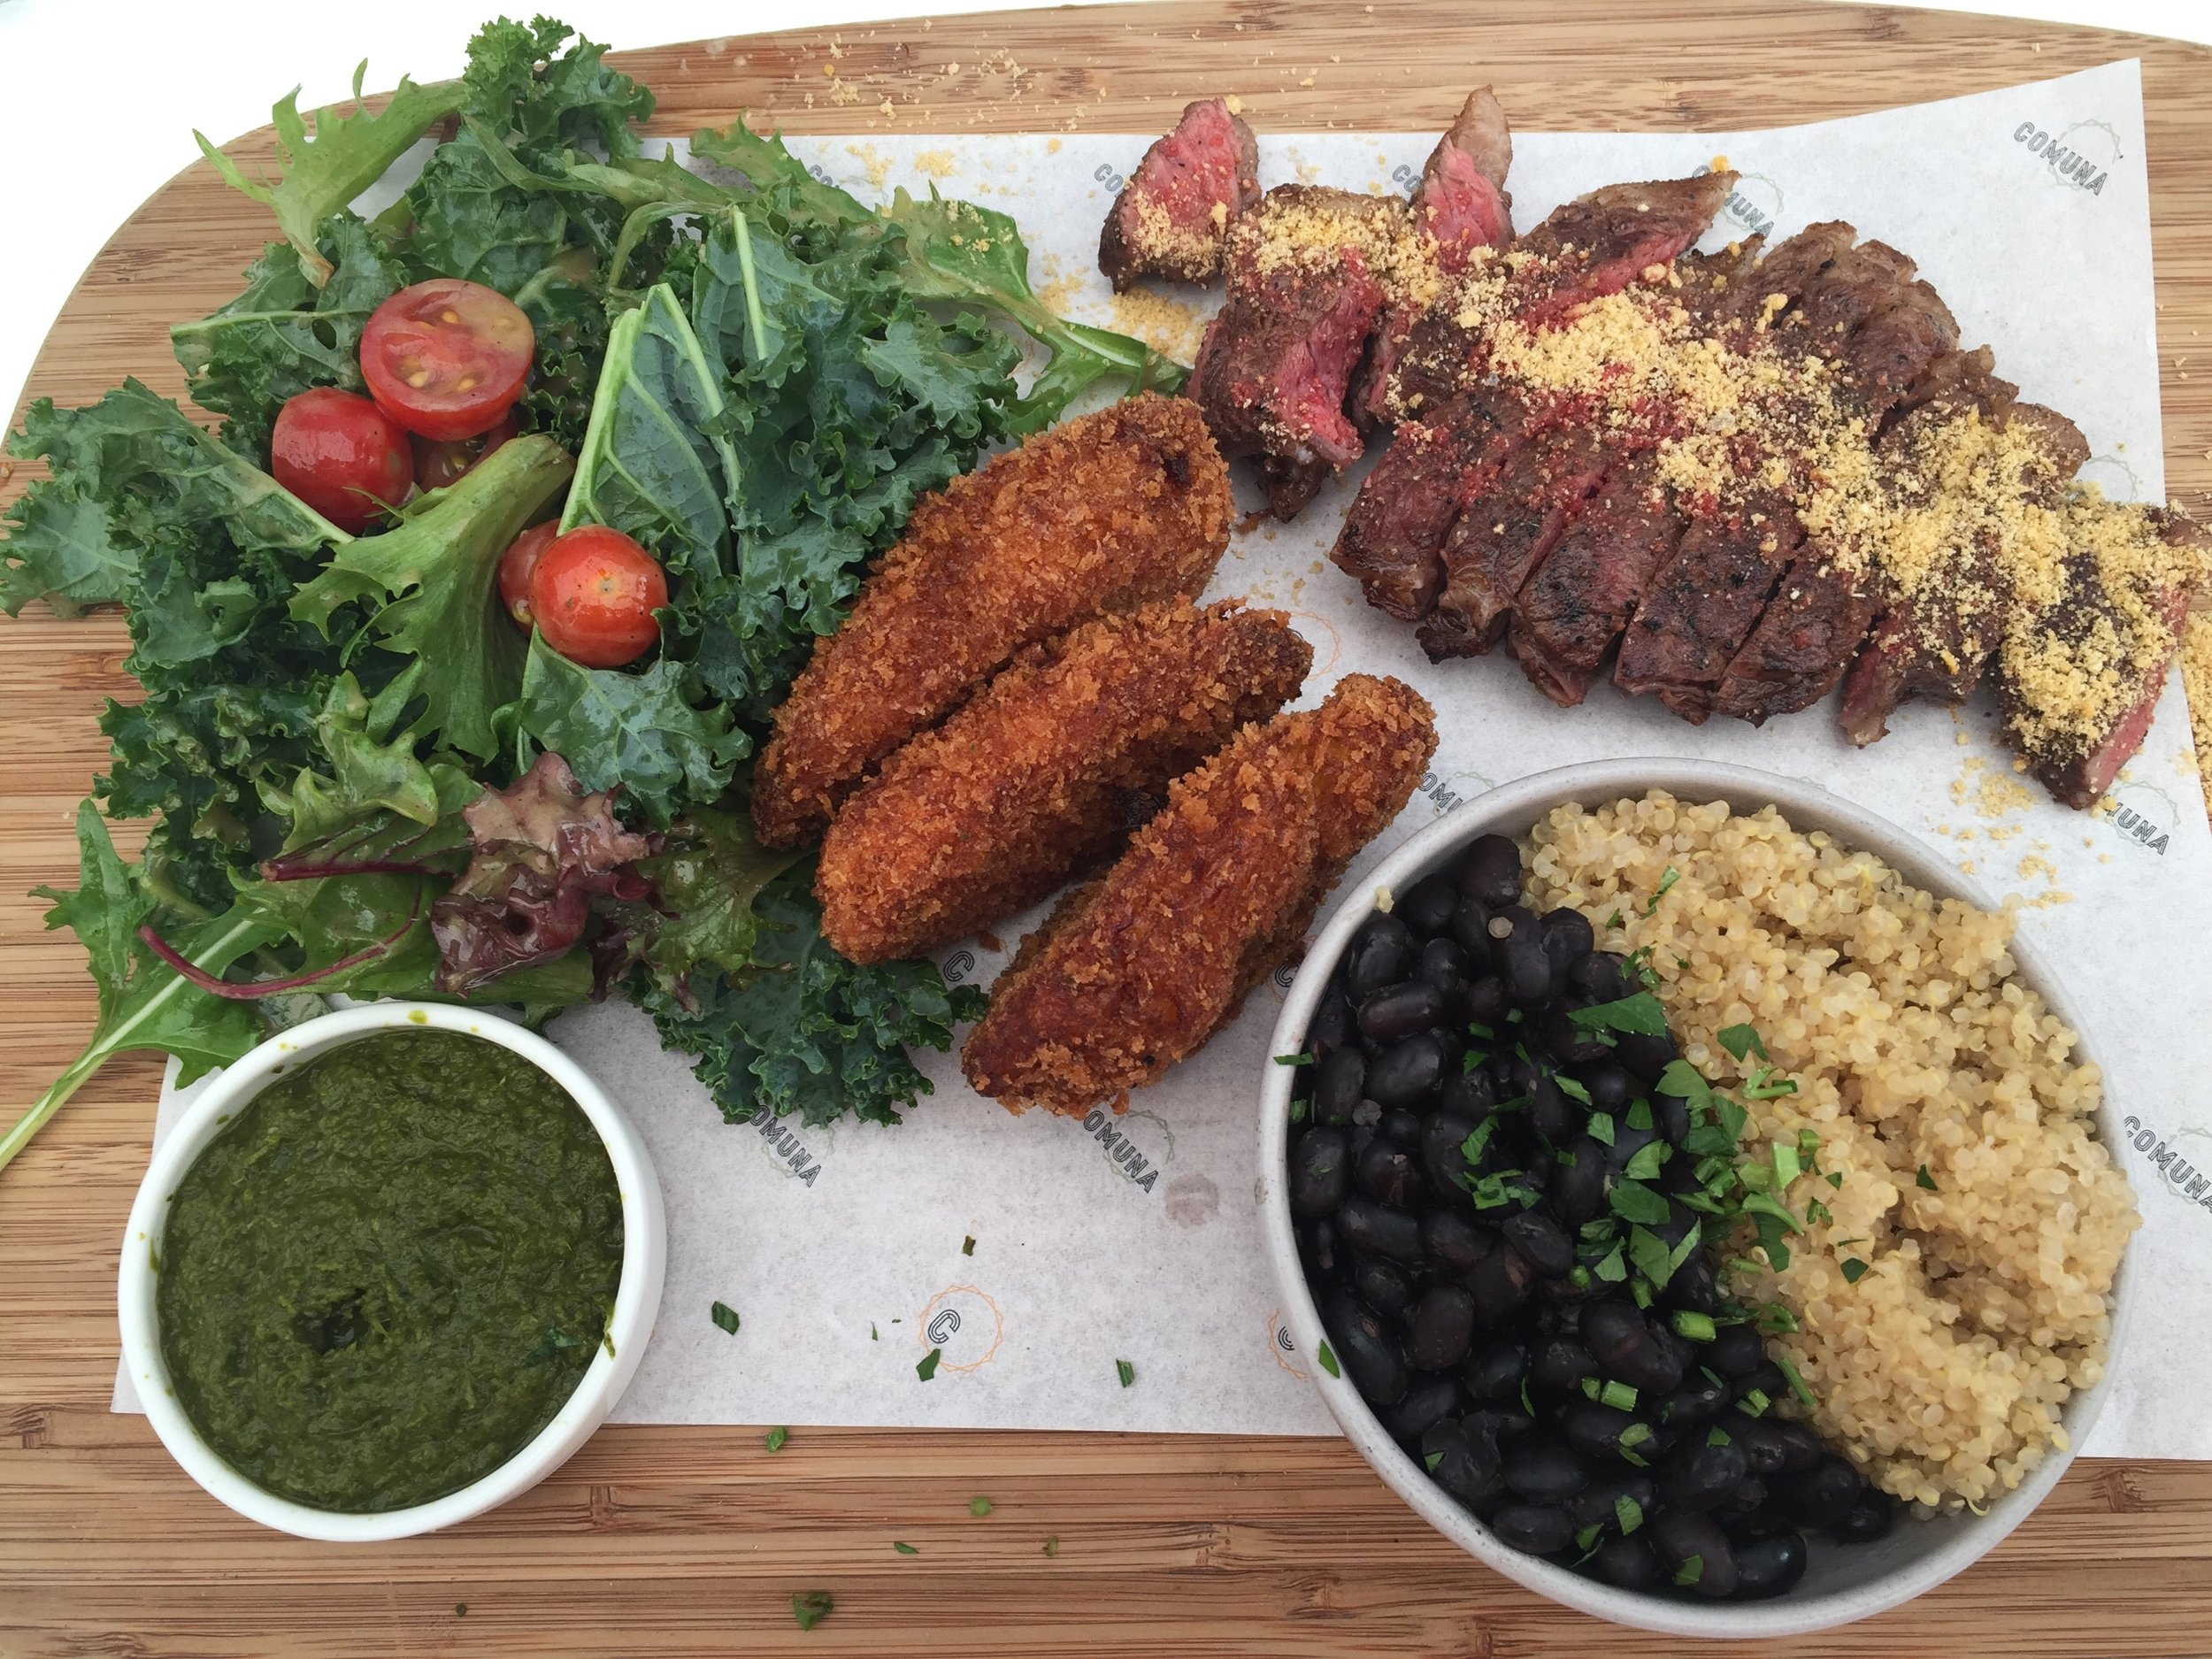 CHURRASCO - Picanha; char grilled steak, quinoa, black beans, fried banana, salad, chimichurri